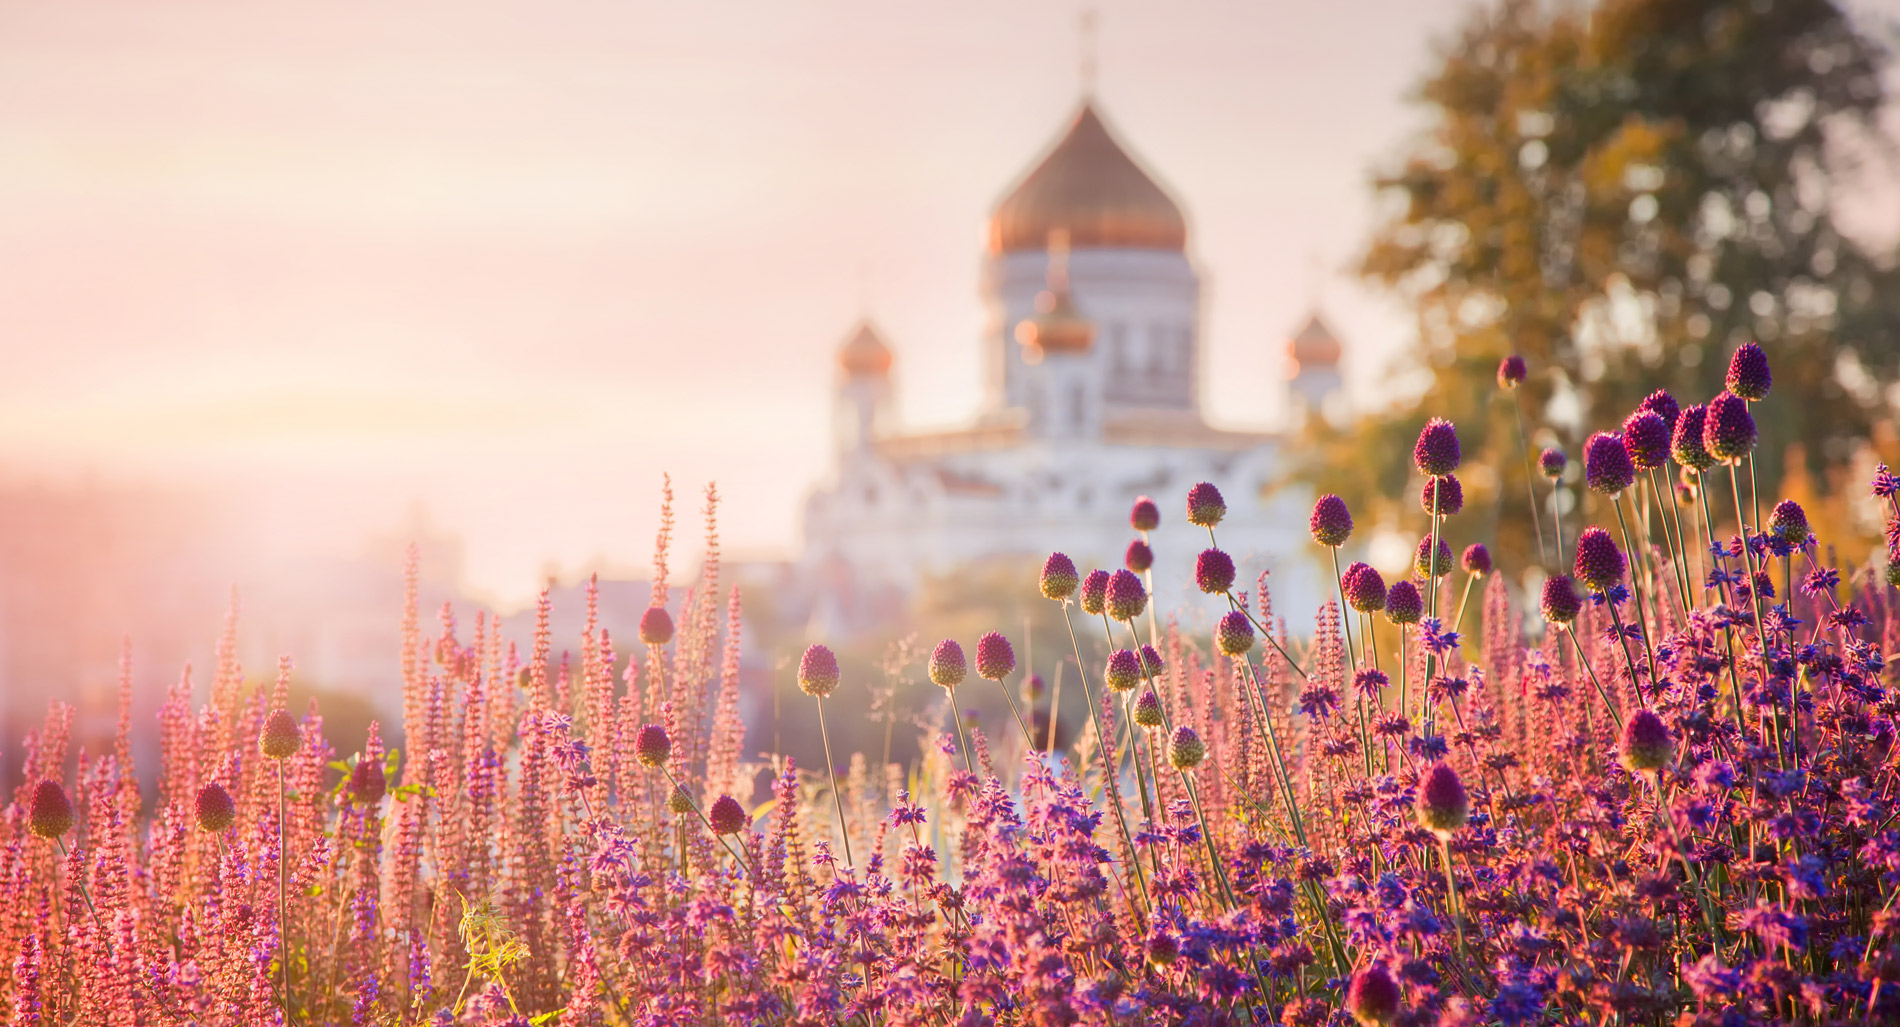 Cathedral of Christ Savior, Moscow, Russia